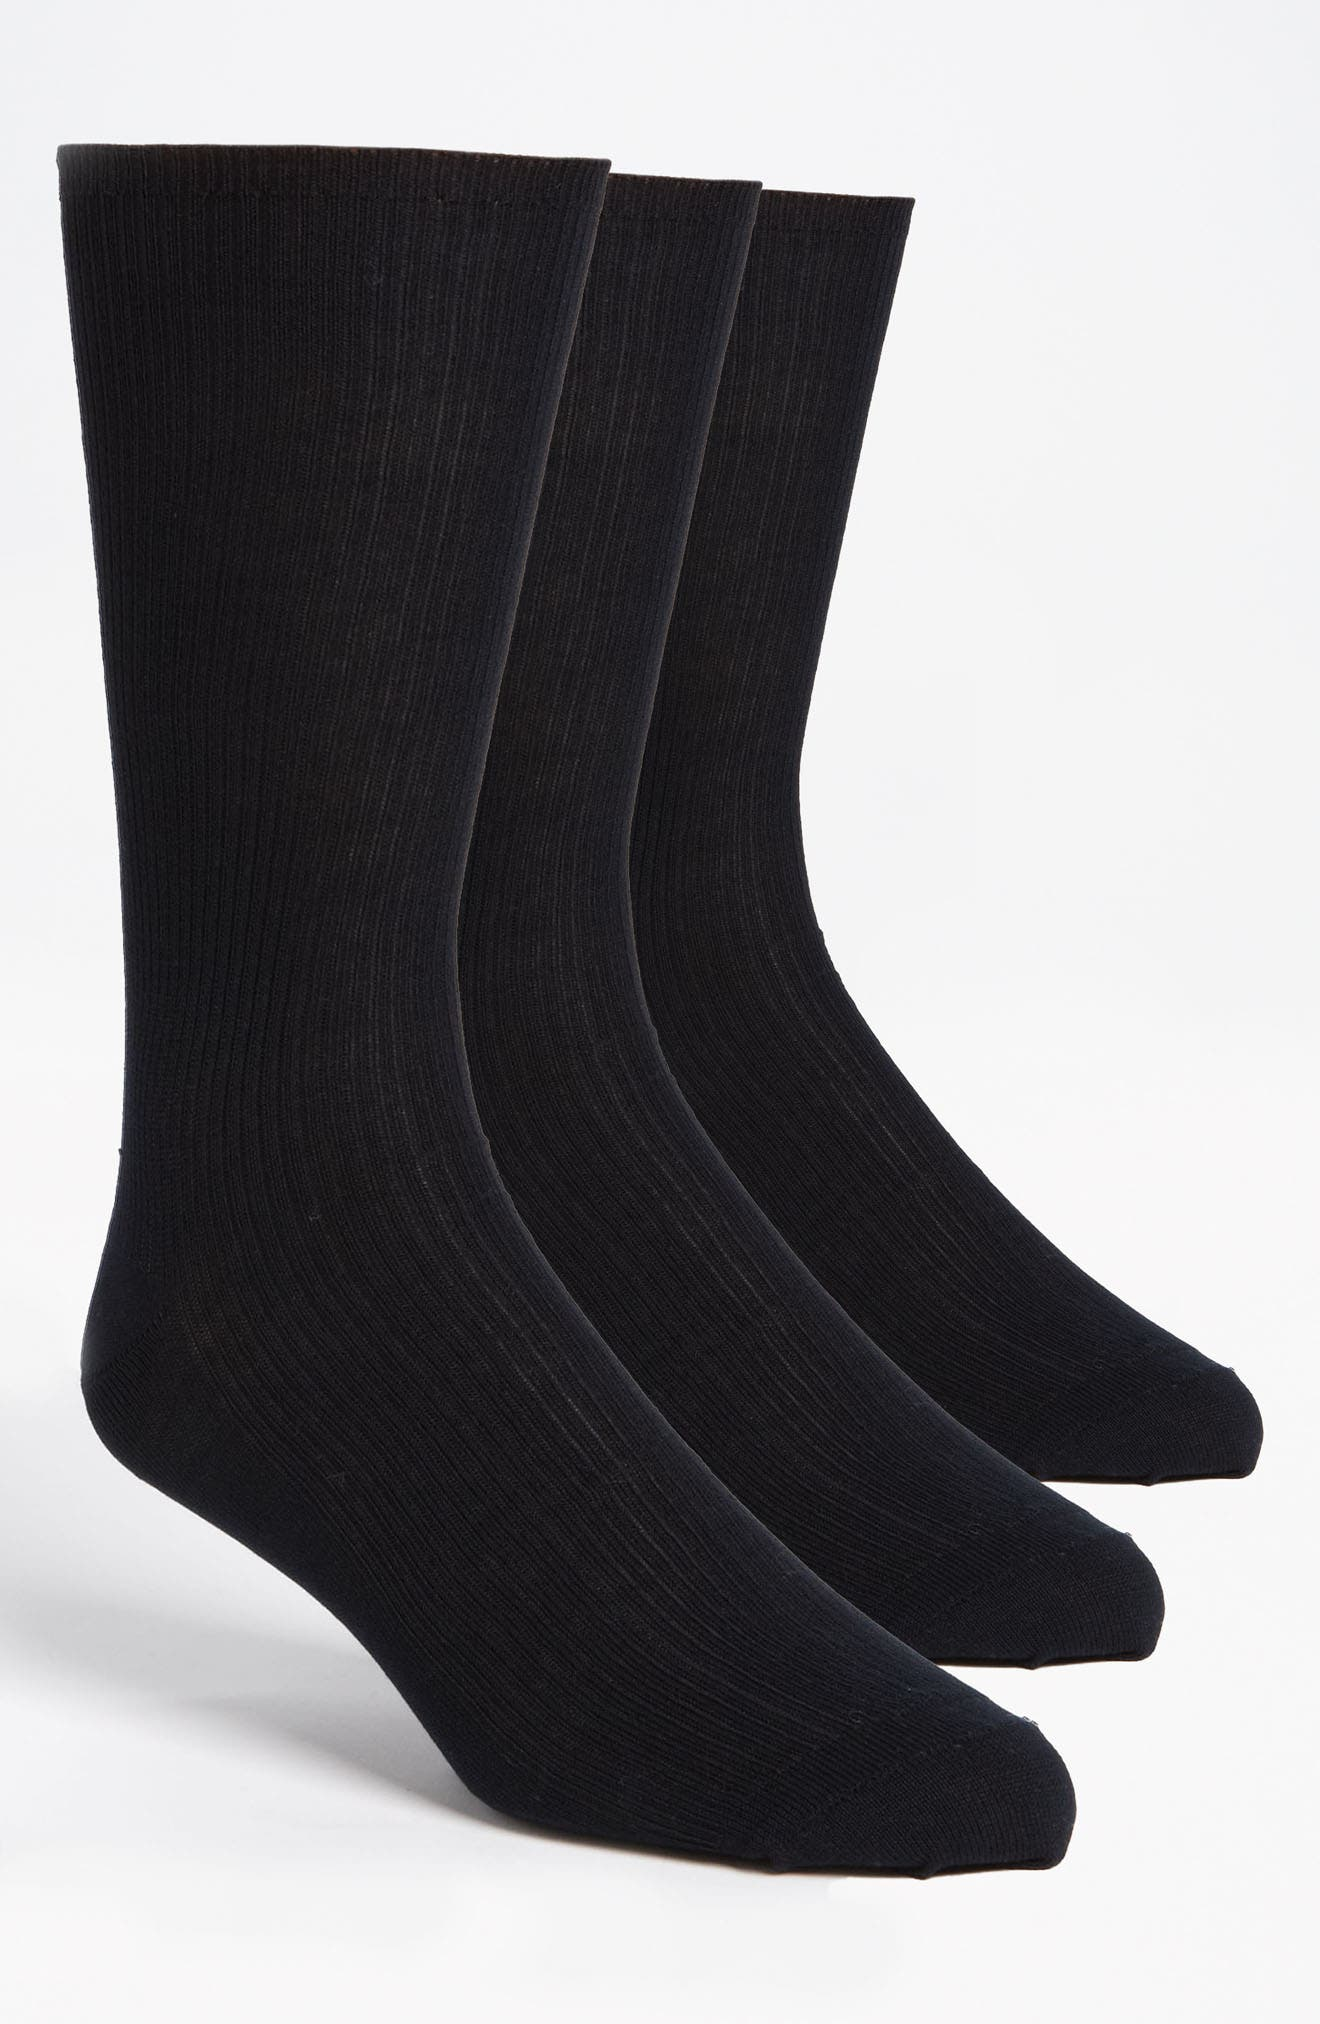 Alternate Image 1 Selected - Calvin Klein Cotton Blend Dress Socks (3-Pack)